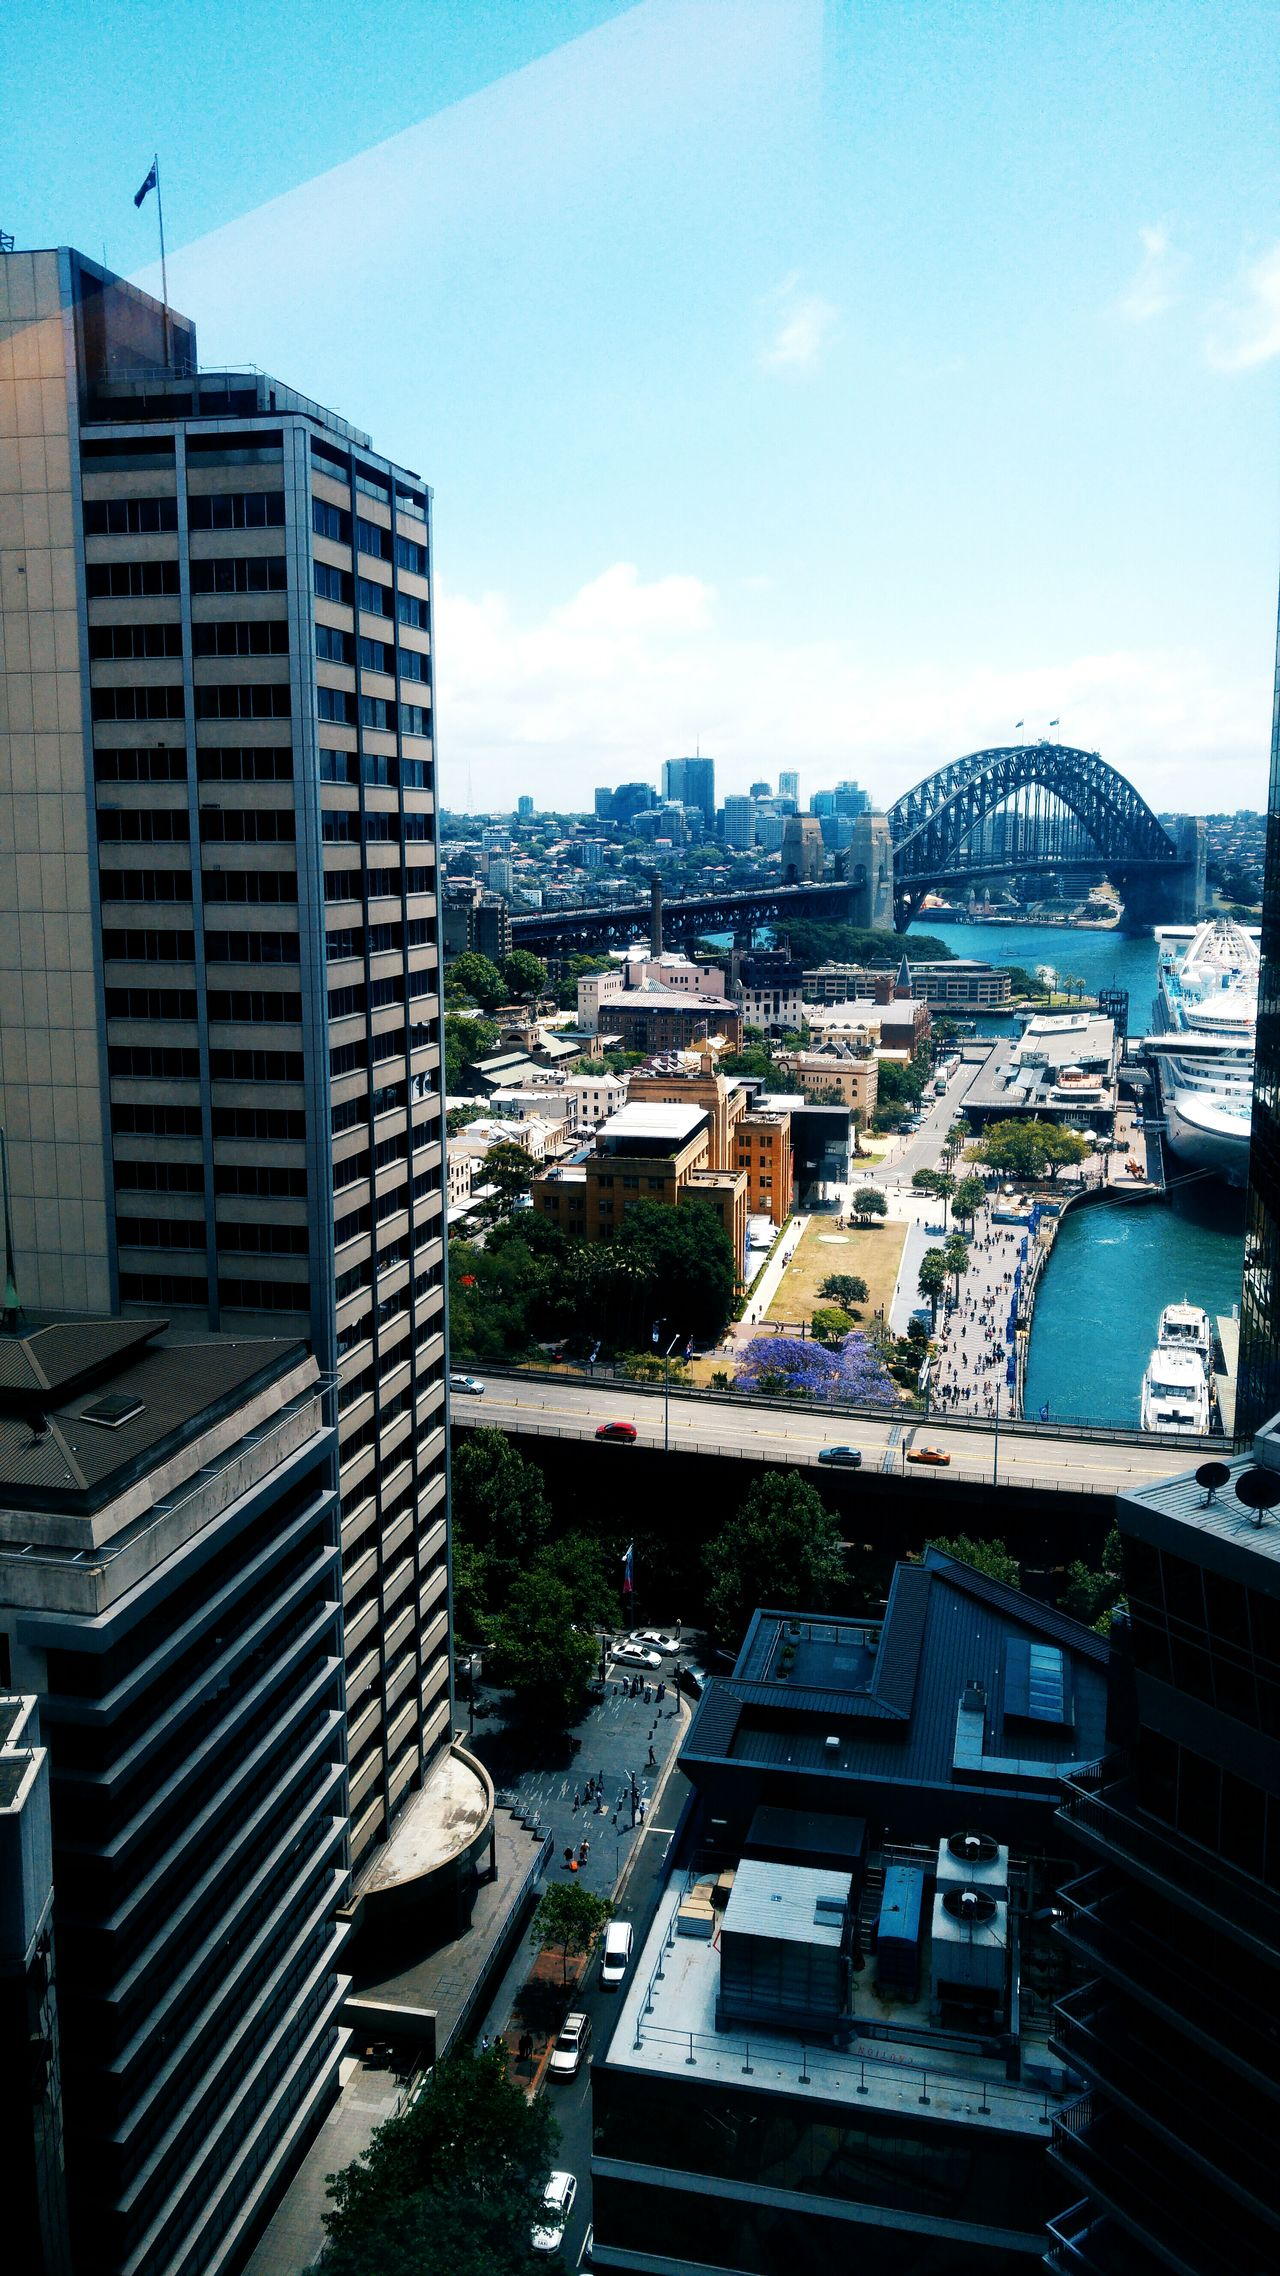 Beautiful View Skyscraper Building Exterior City Architecture Cityscape Urban Skyline Modern Aerial View City Life Built Structure Outdoors Office Building Exterior No People Business Finance And Industry Downtown District Apartment Travel Destinations Sky Cloud - Sky Day Architecture Sydney, Australia Tower Illuminated Harbourbridge